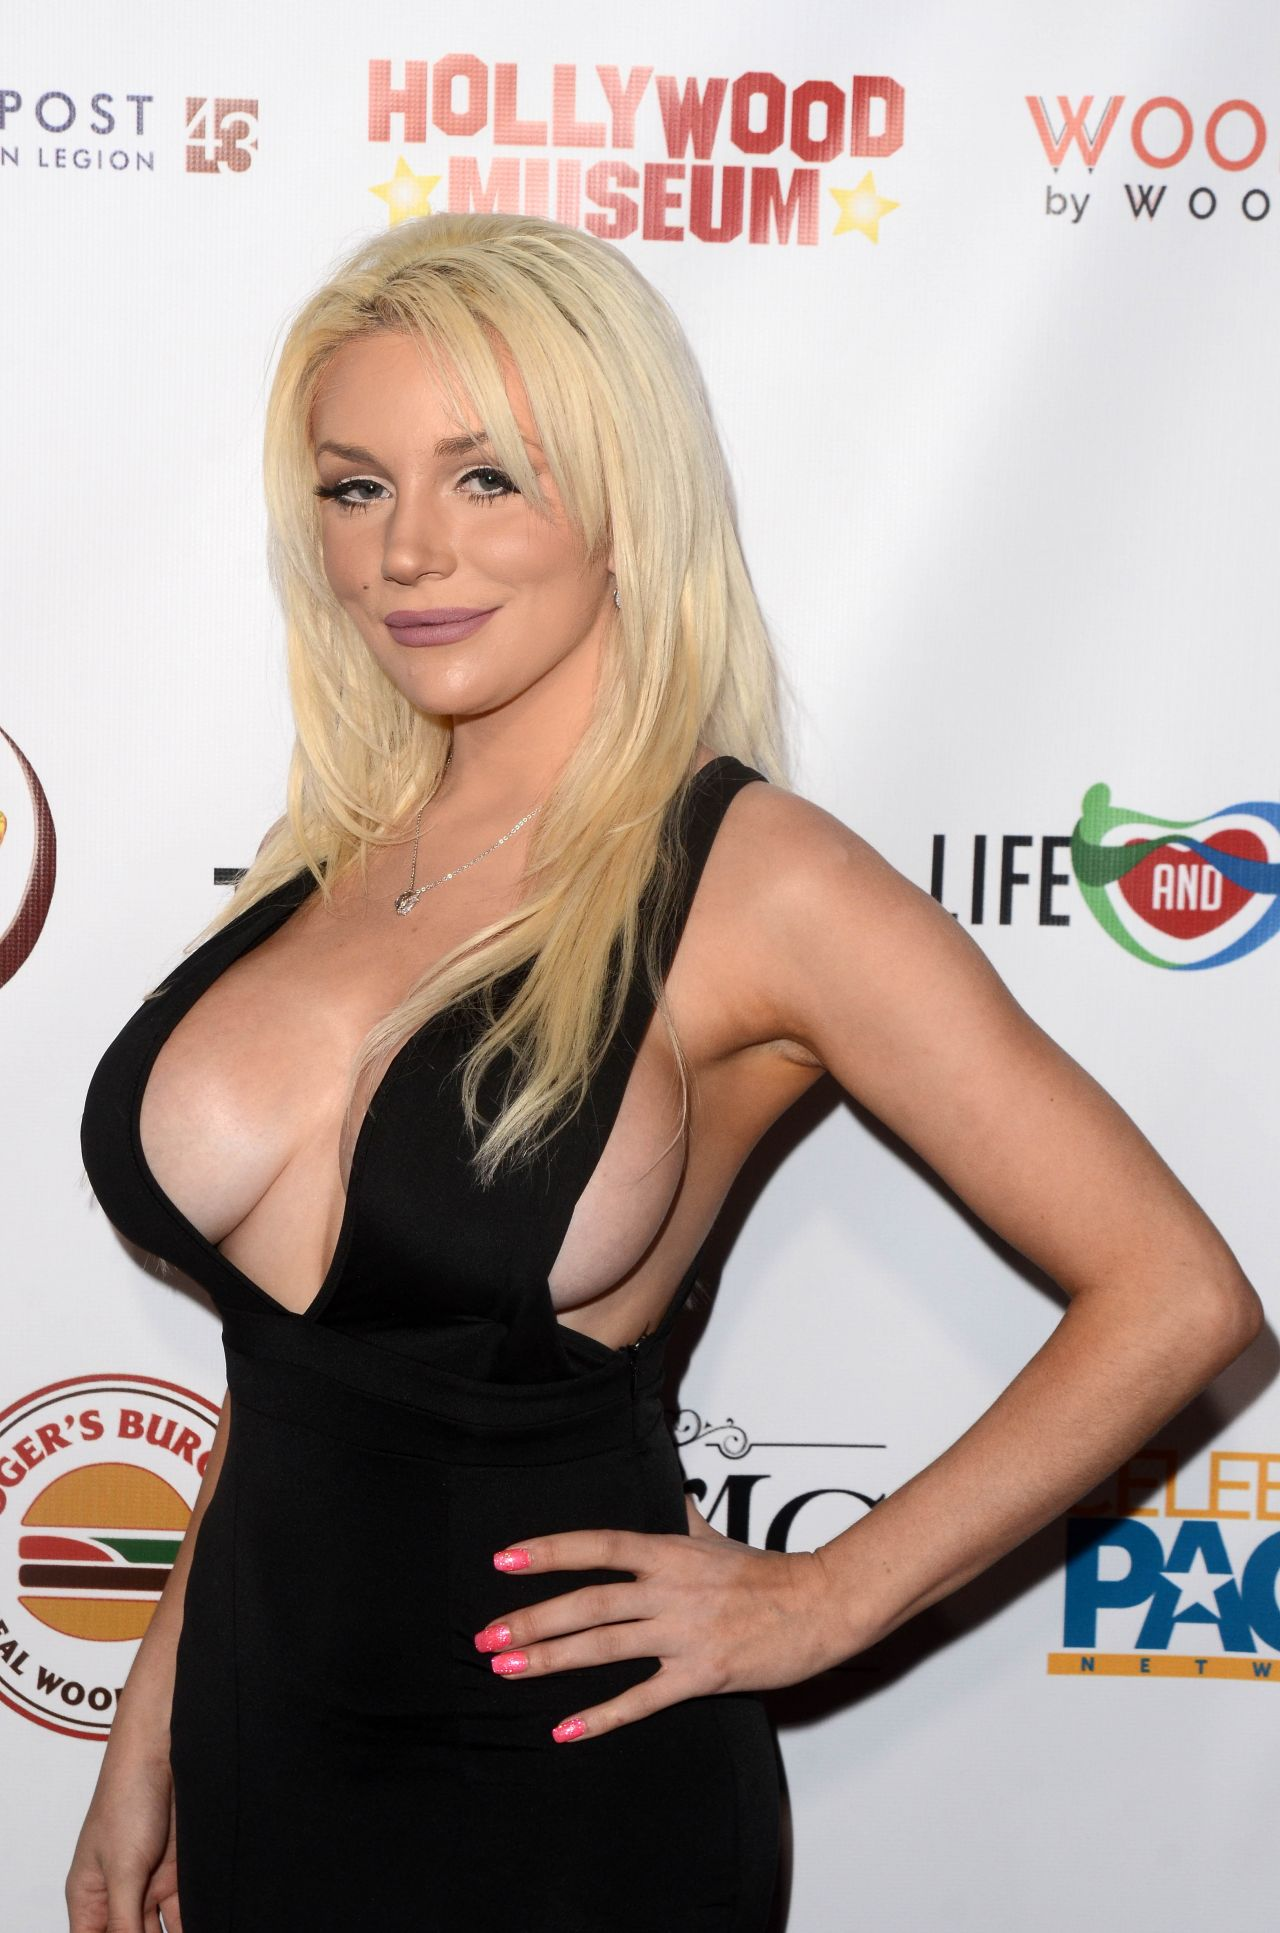 courtney stodden tits actress hollywood neal roger dinner oscar viewing dress fake 3rd annual museum cleavage courtneystodden huge leaked editorial